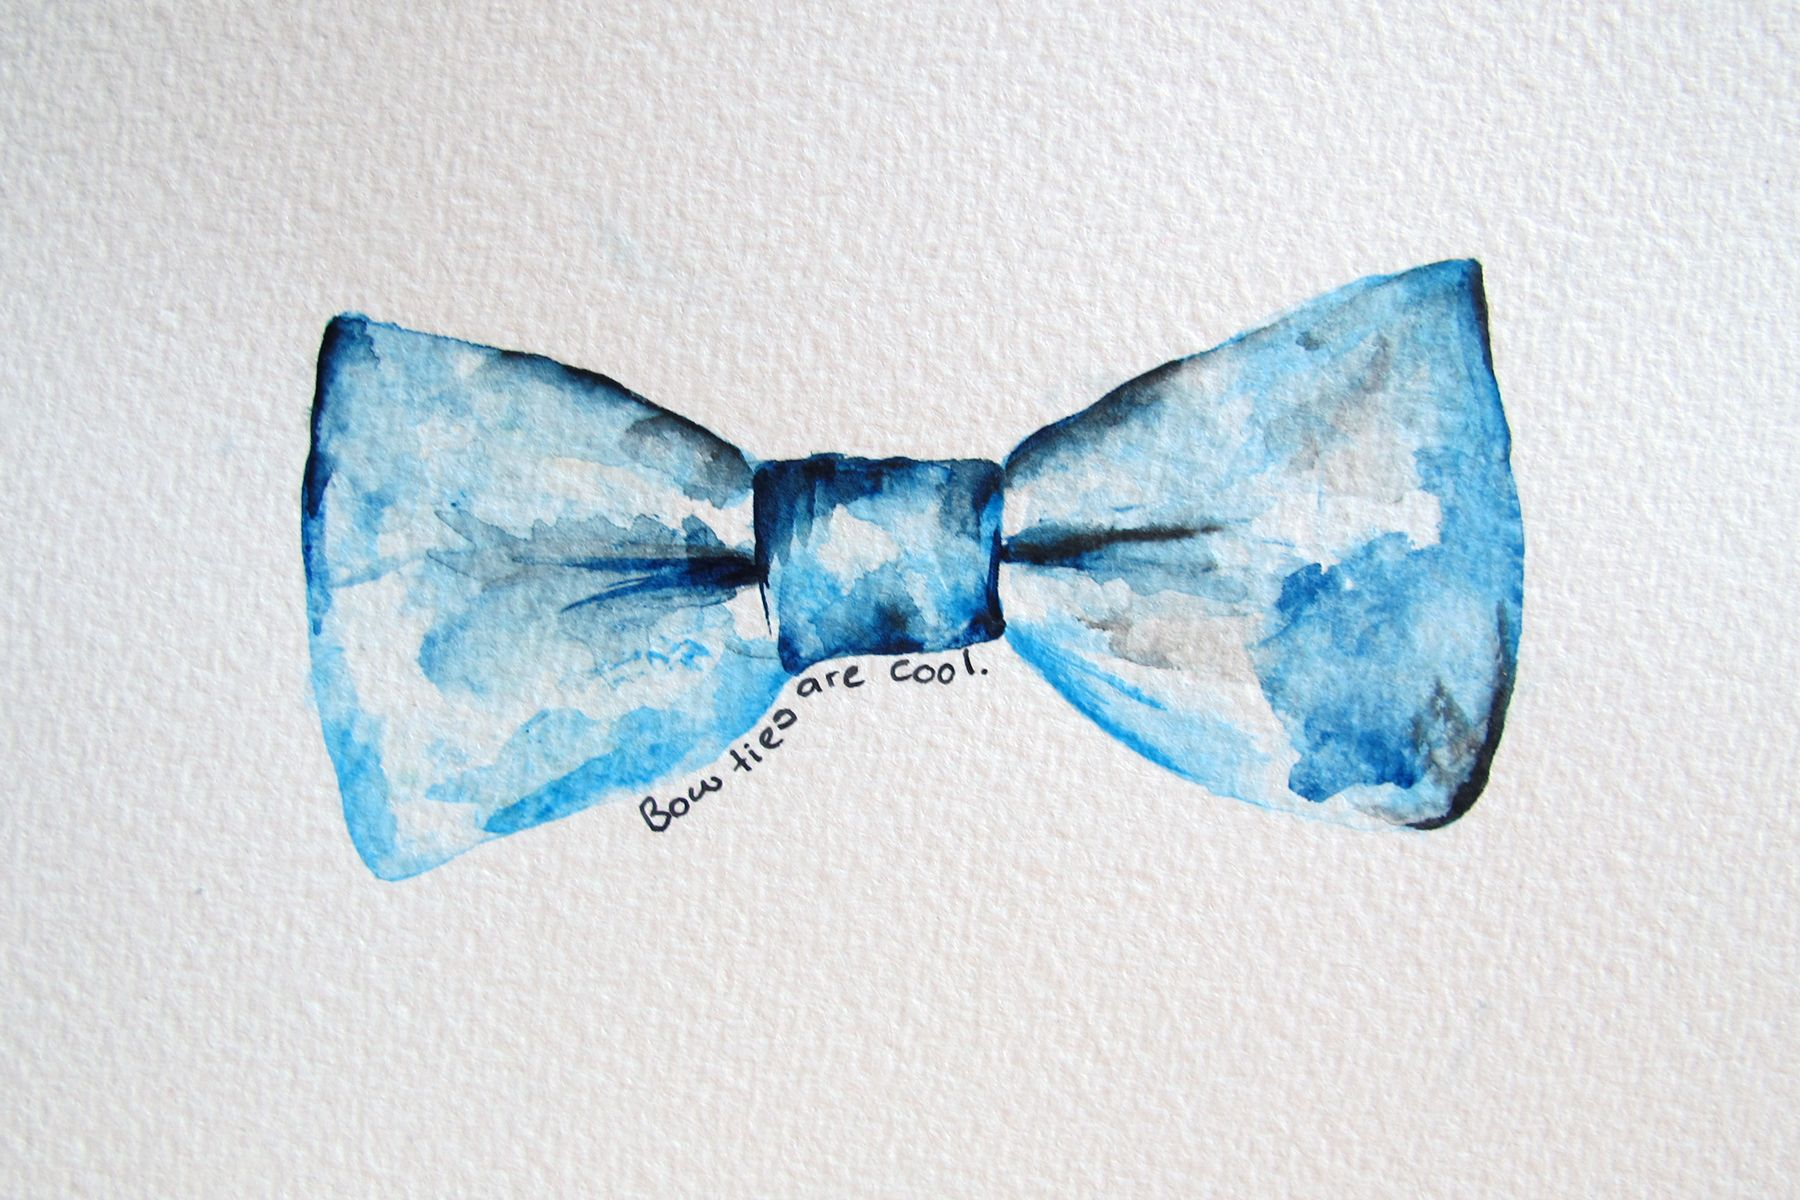 1800x1200 Pin By Sarah Smit On Watercolour Watercolor, Bow